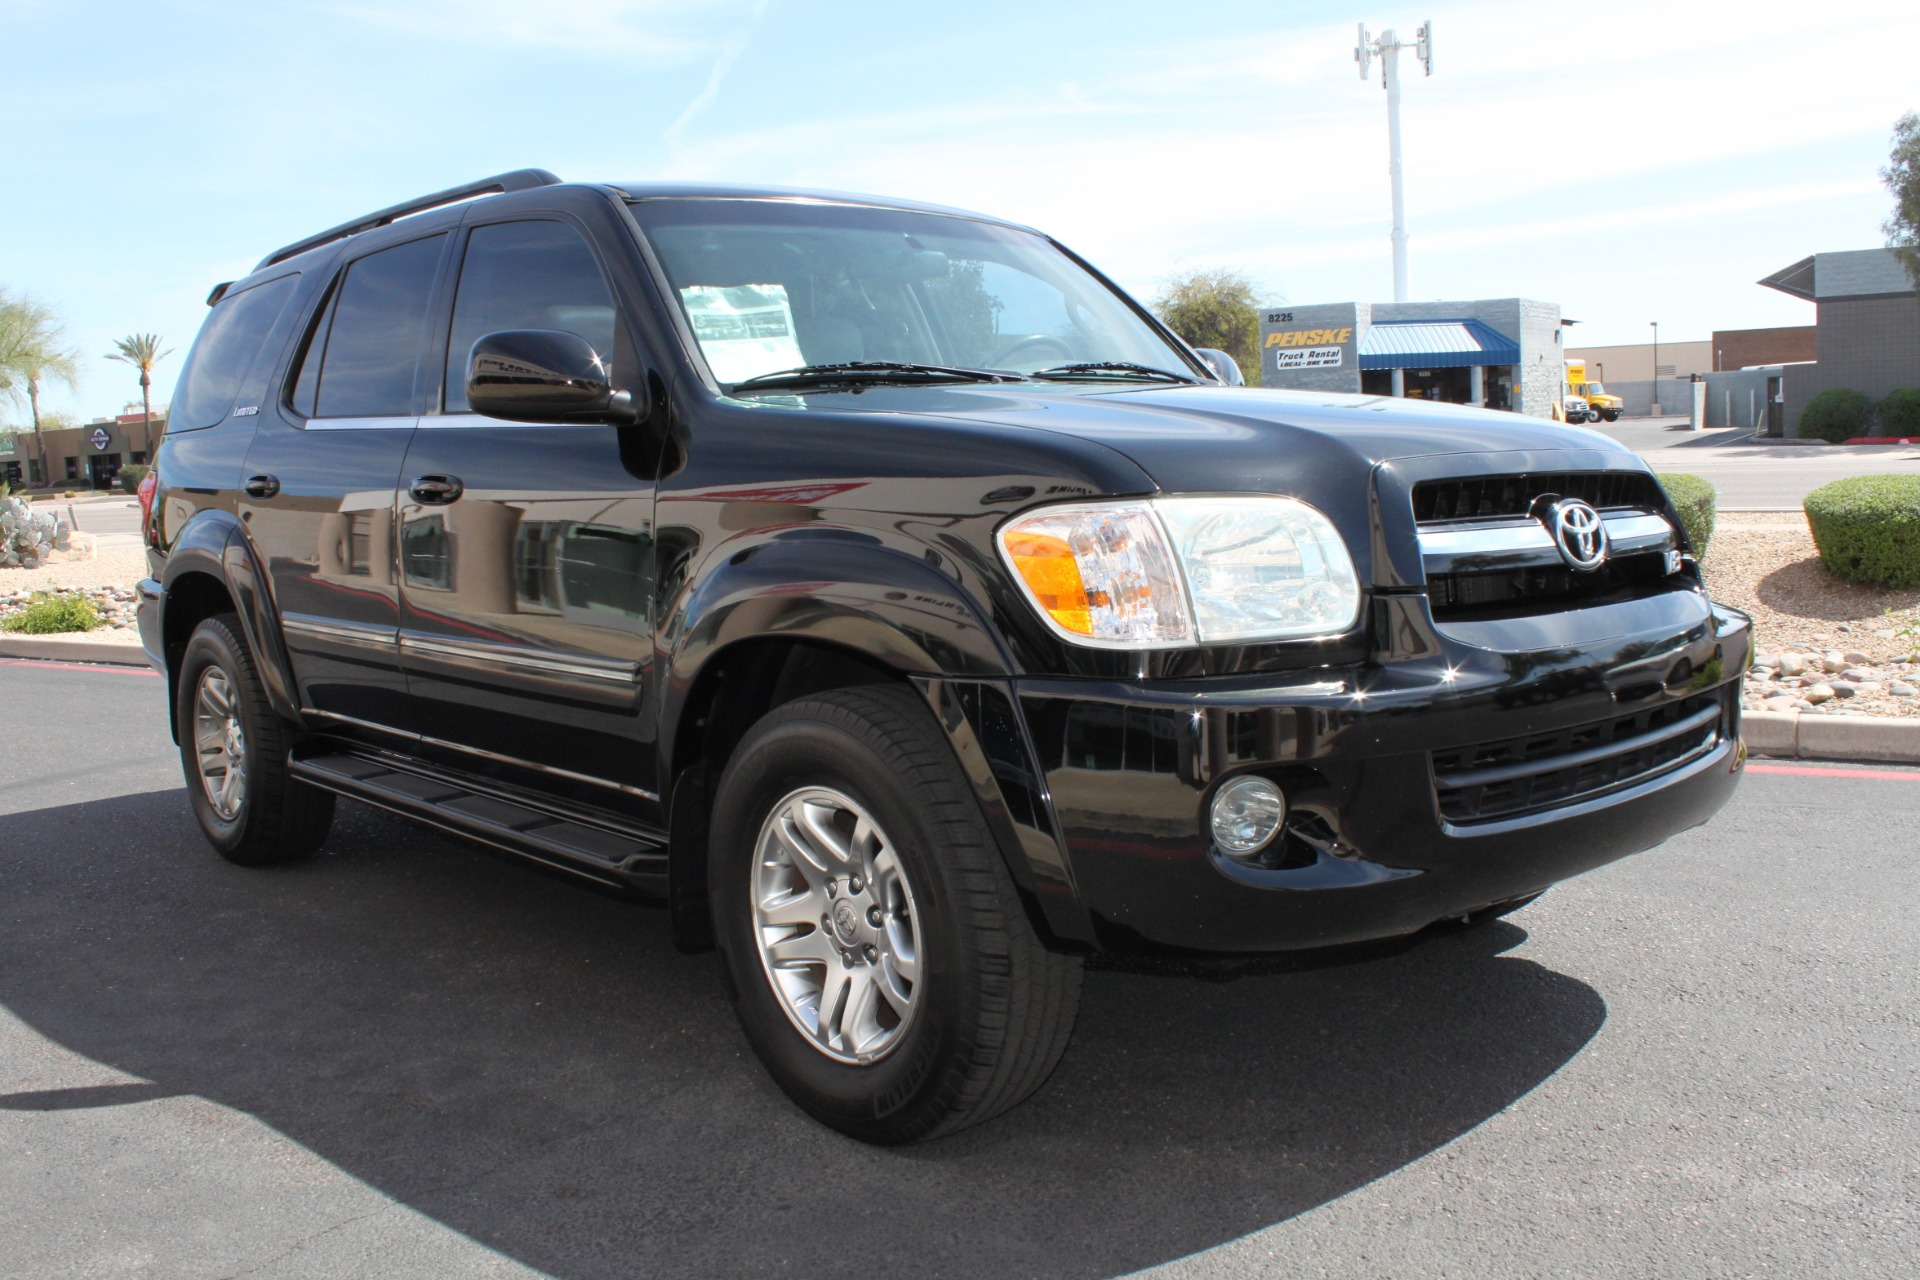 Used-2005-Toyota-Sequoia-Limited-Mercedes-Benz